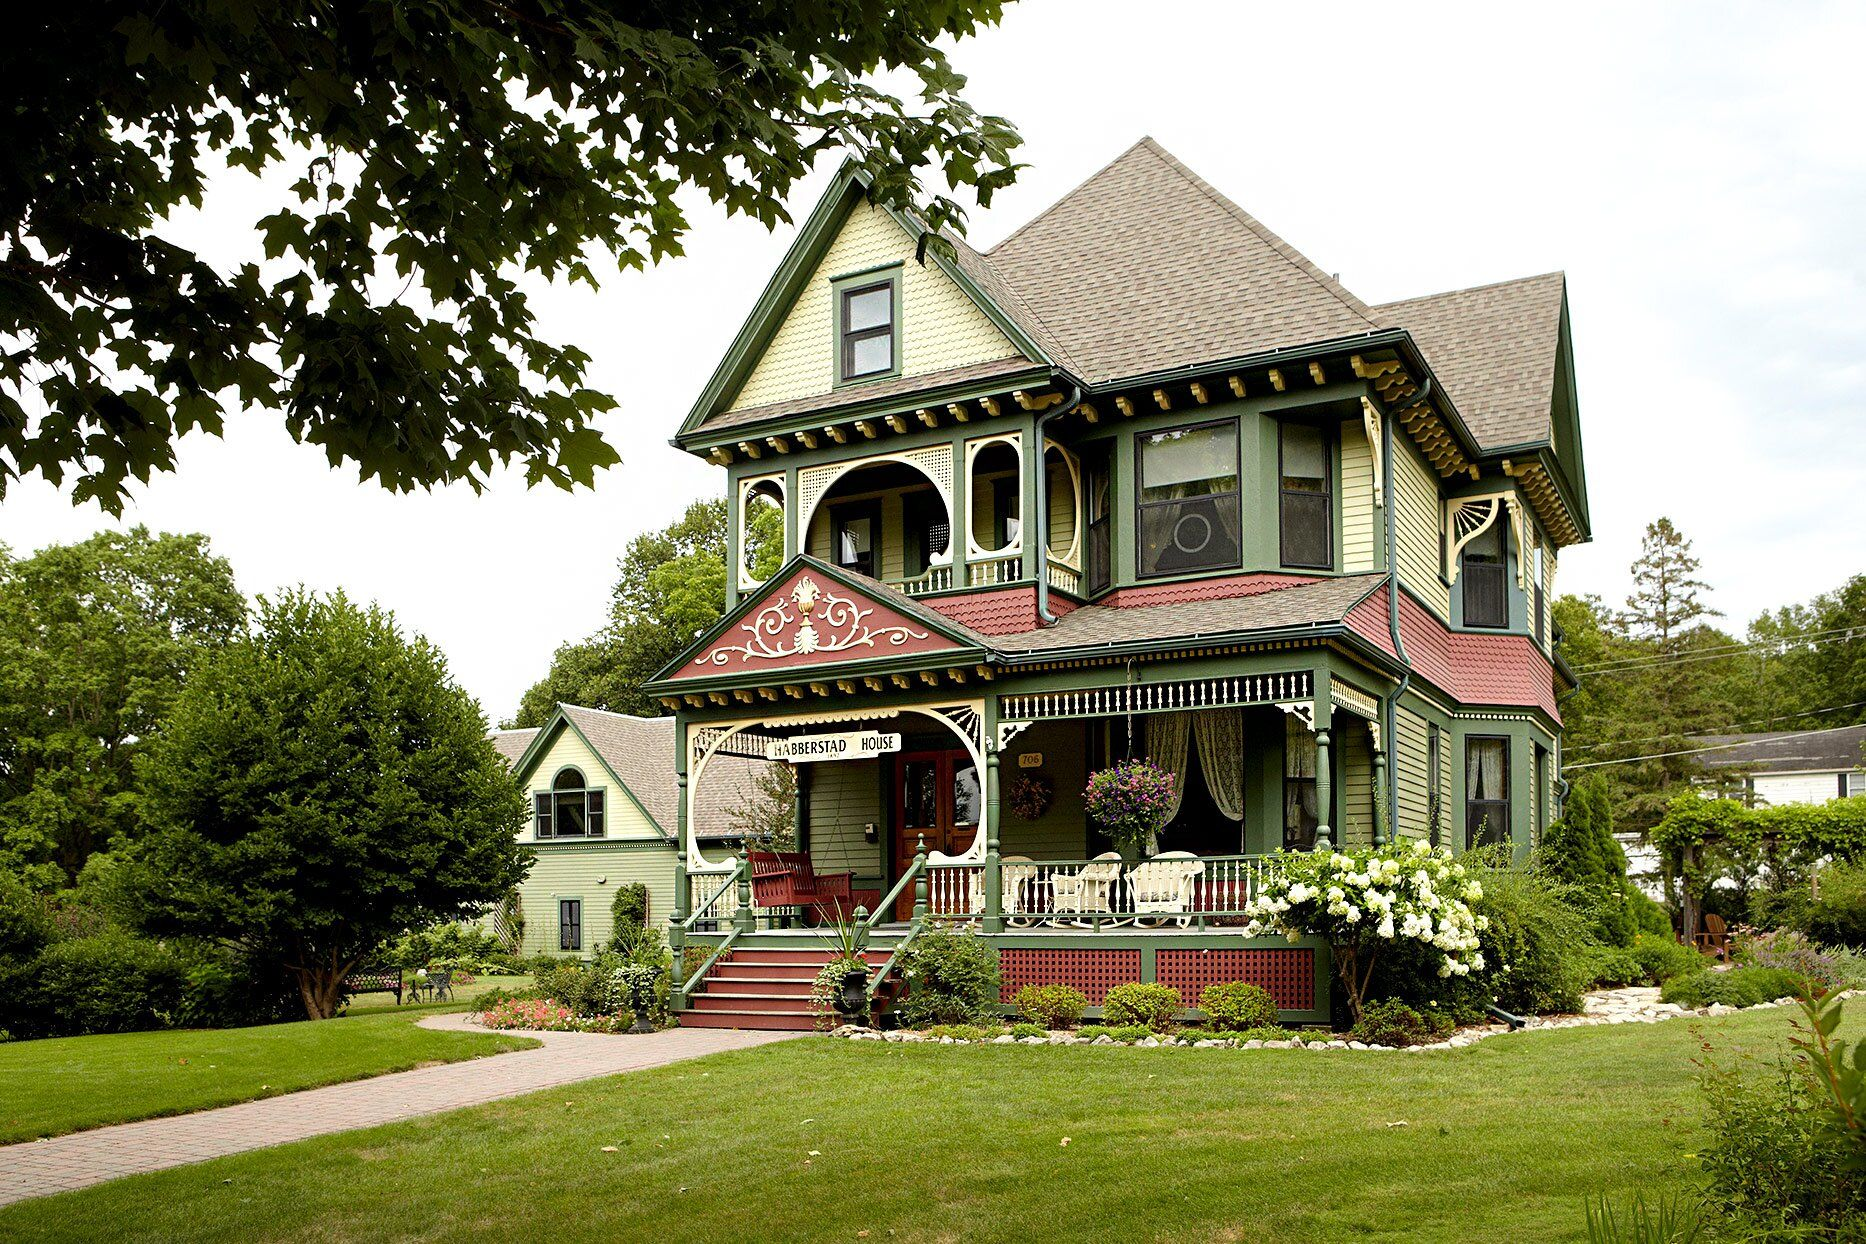 17 Victorian-Style Houses with Stunning Decorative Details